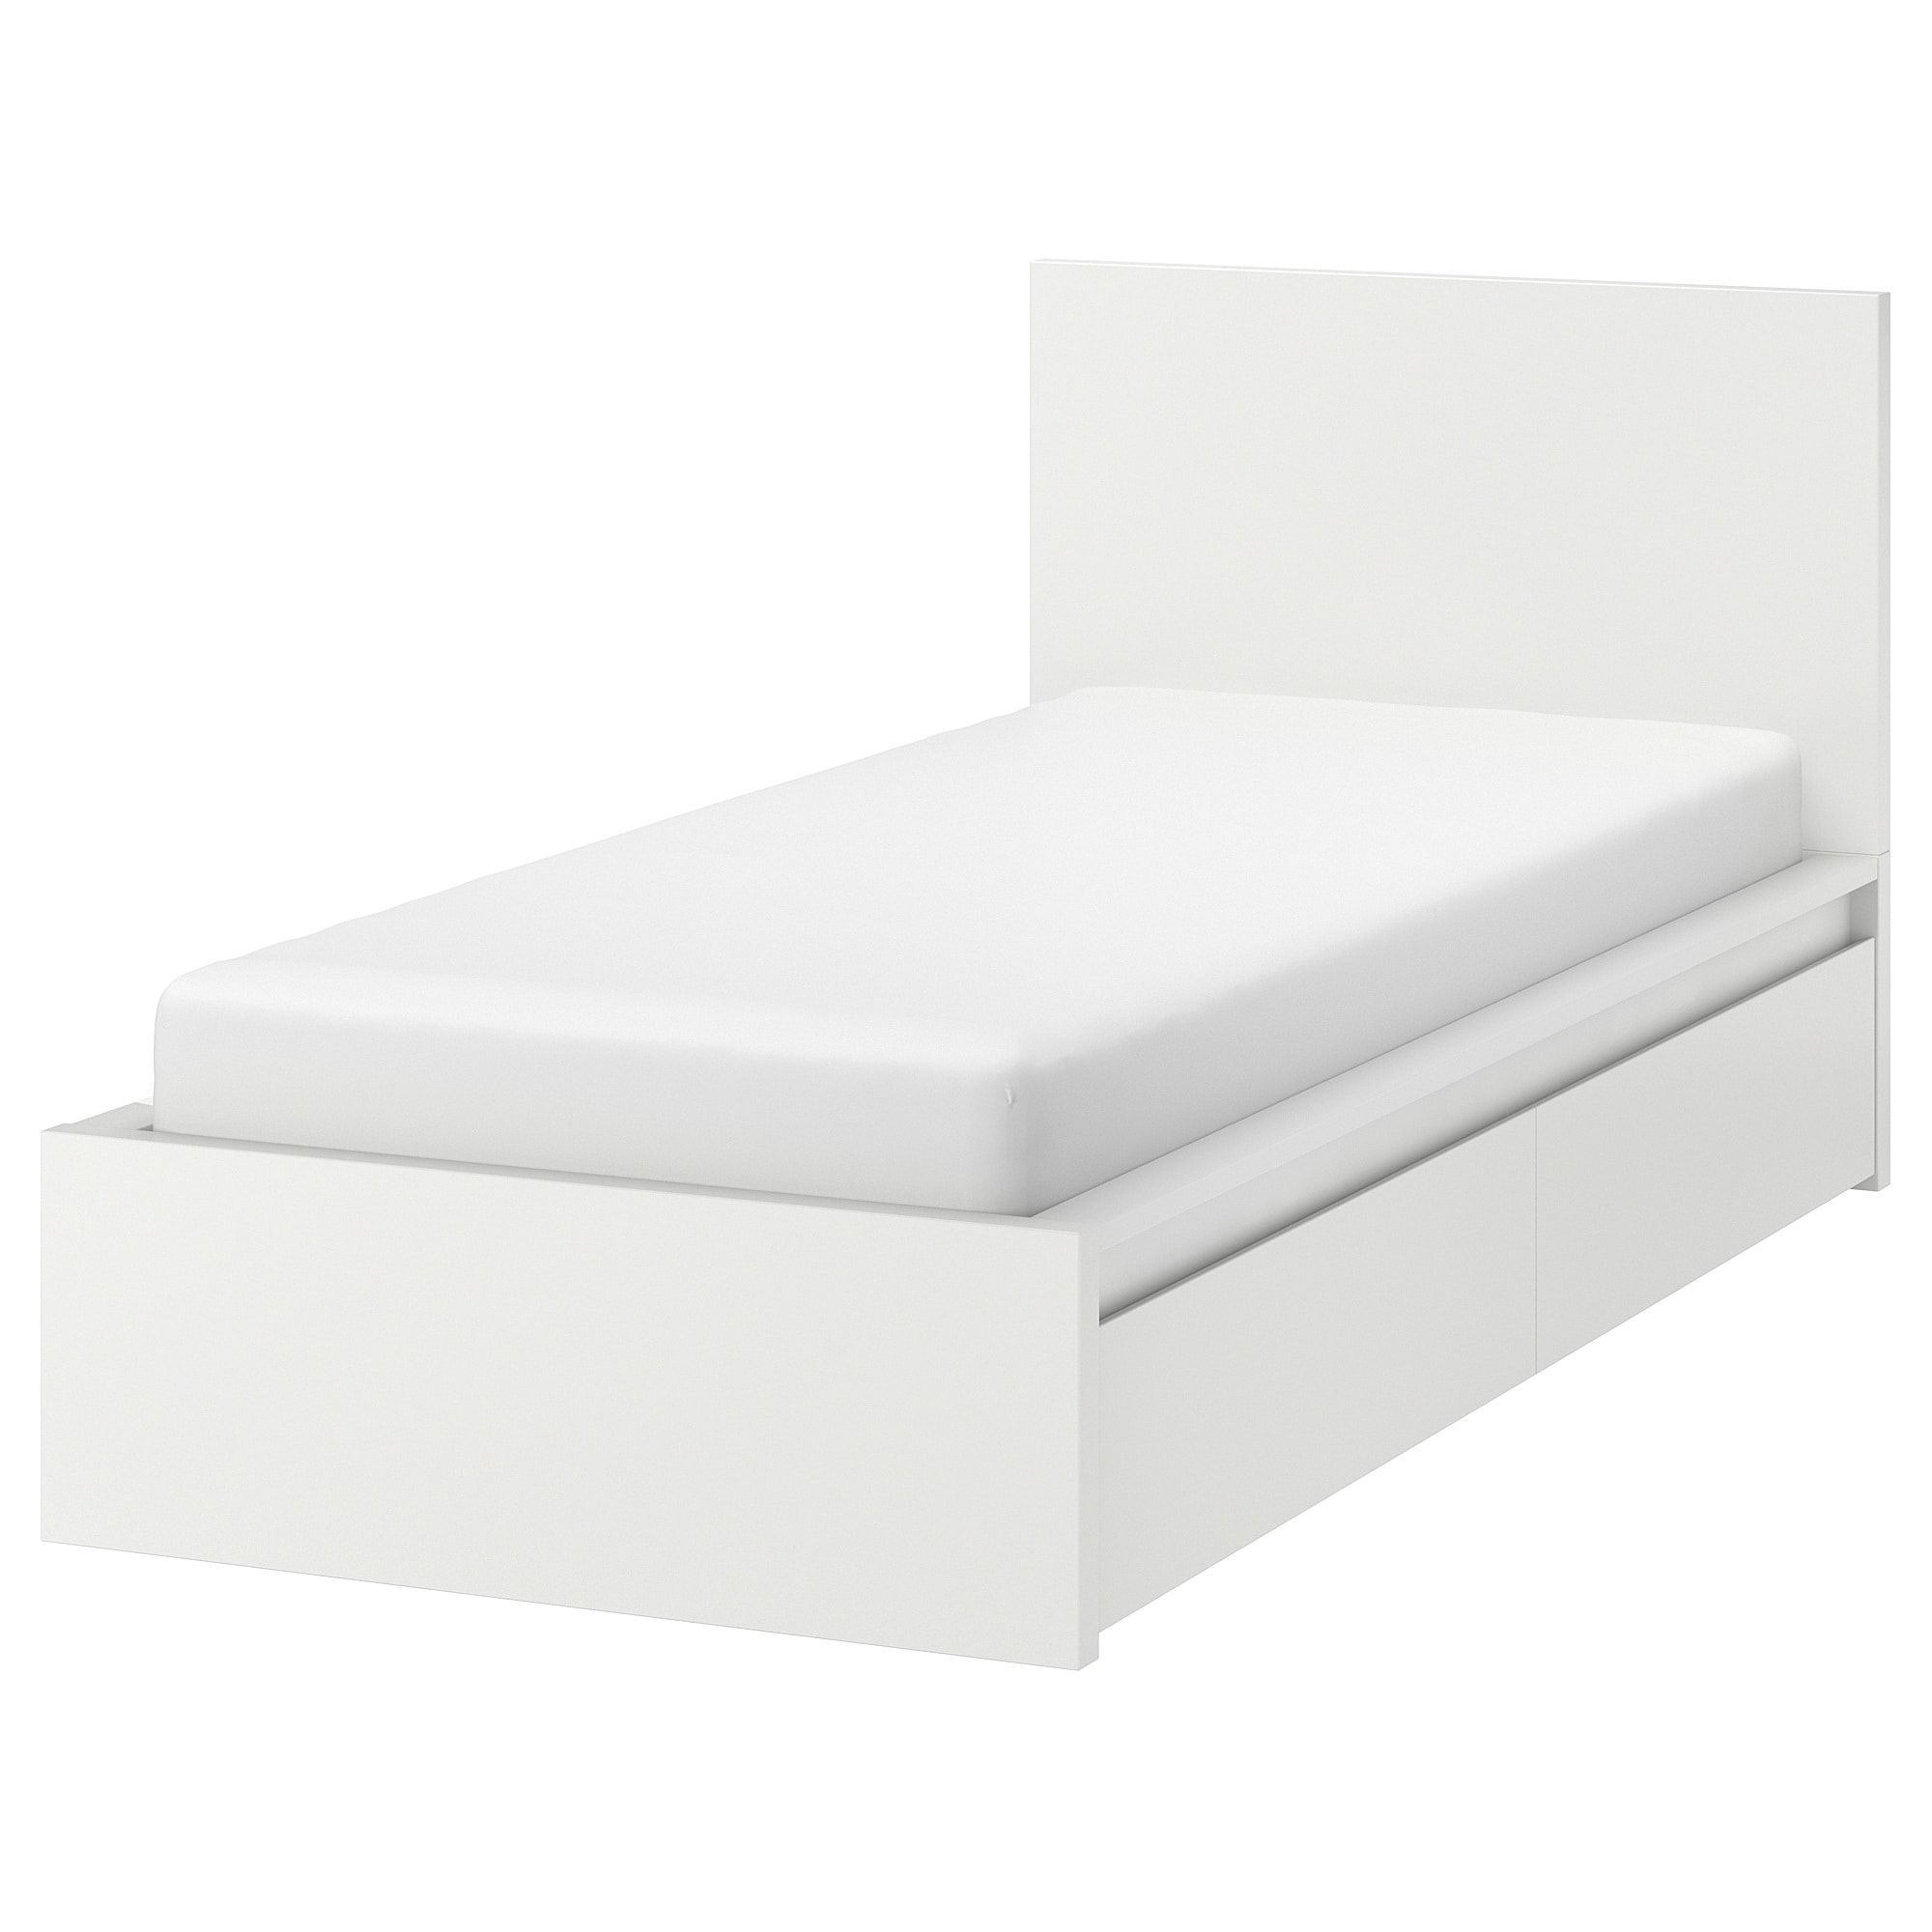 Malm High Bed Frame 2 Storage Boxes White Lonset Twin With